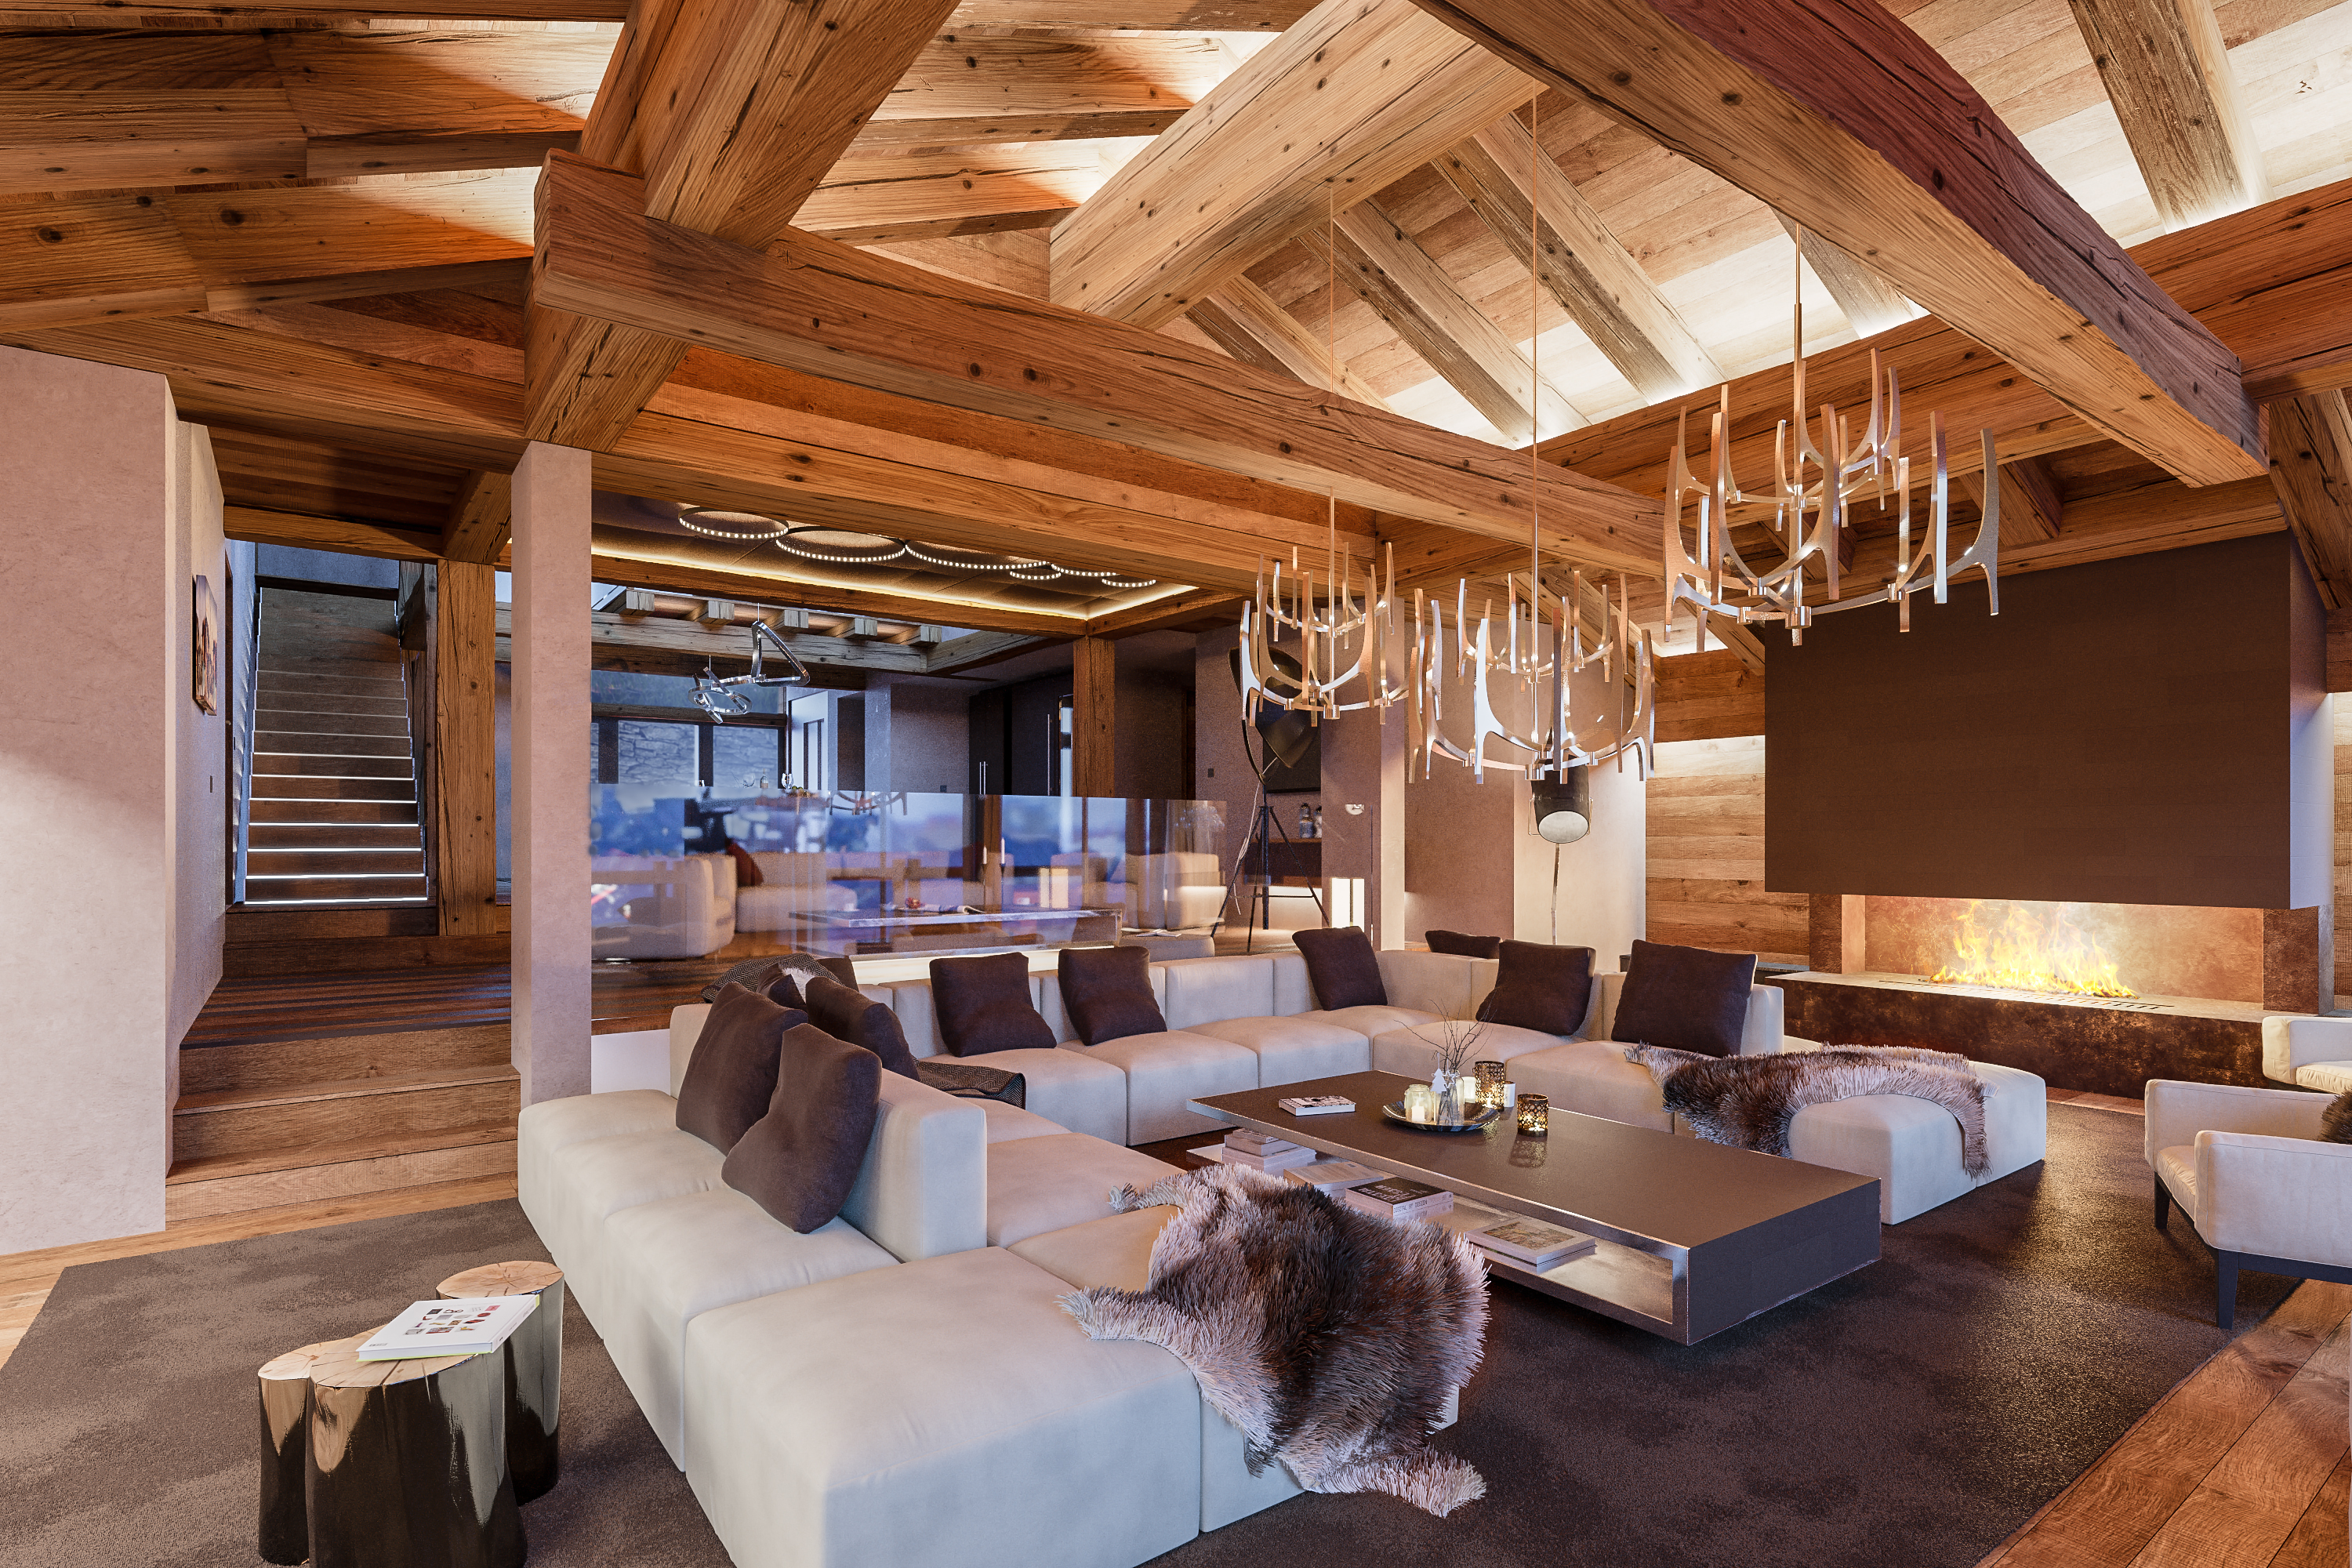 Awesome interieur de chalet images for Amenagement interieur chalet